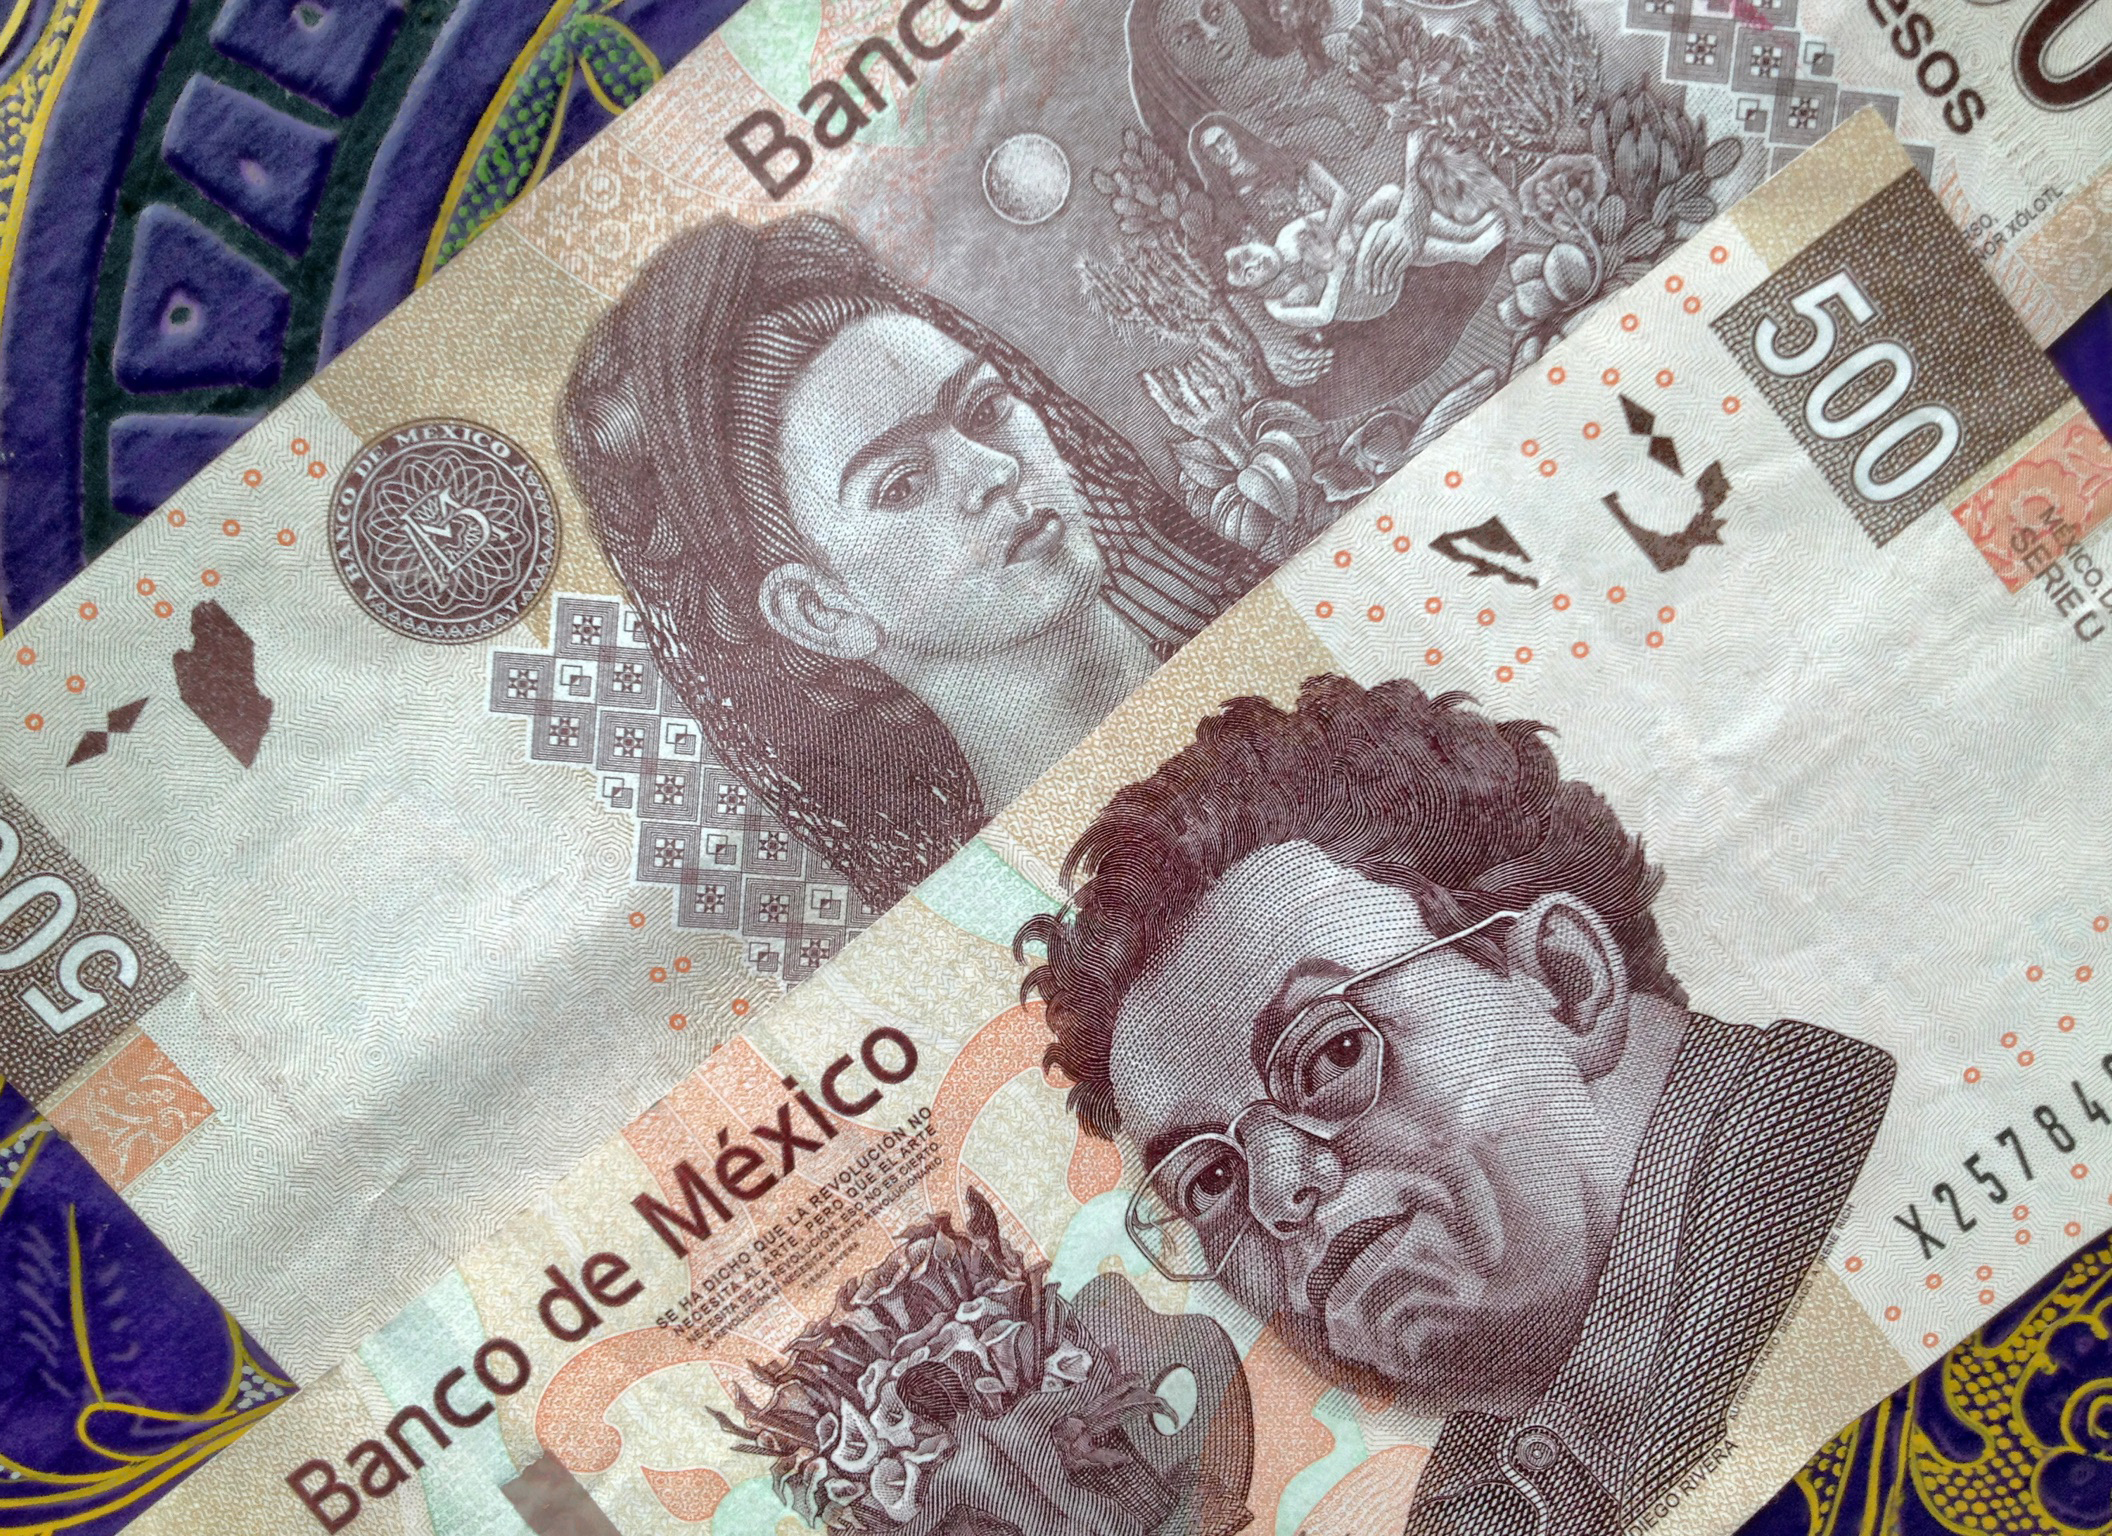 500 Mexican pesos notes on a table with traditional Mexican ornament. The note has the portrait of the painter Diego Riviera on one side and Frida Kahlo on the other.